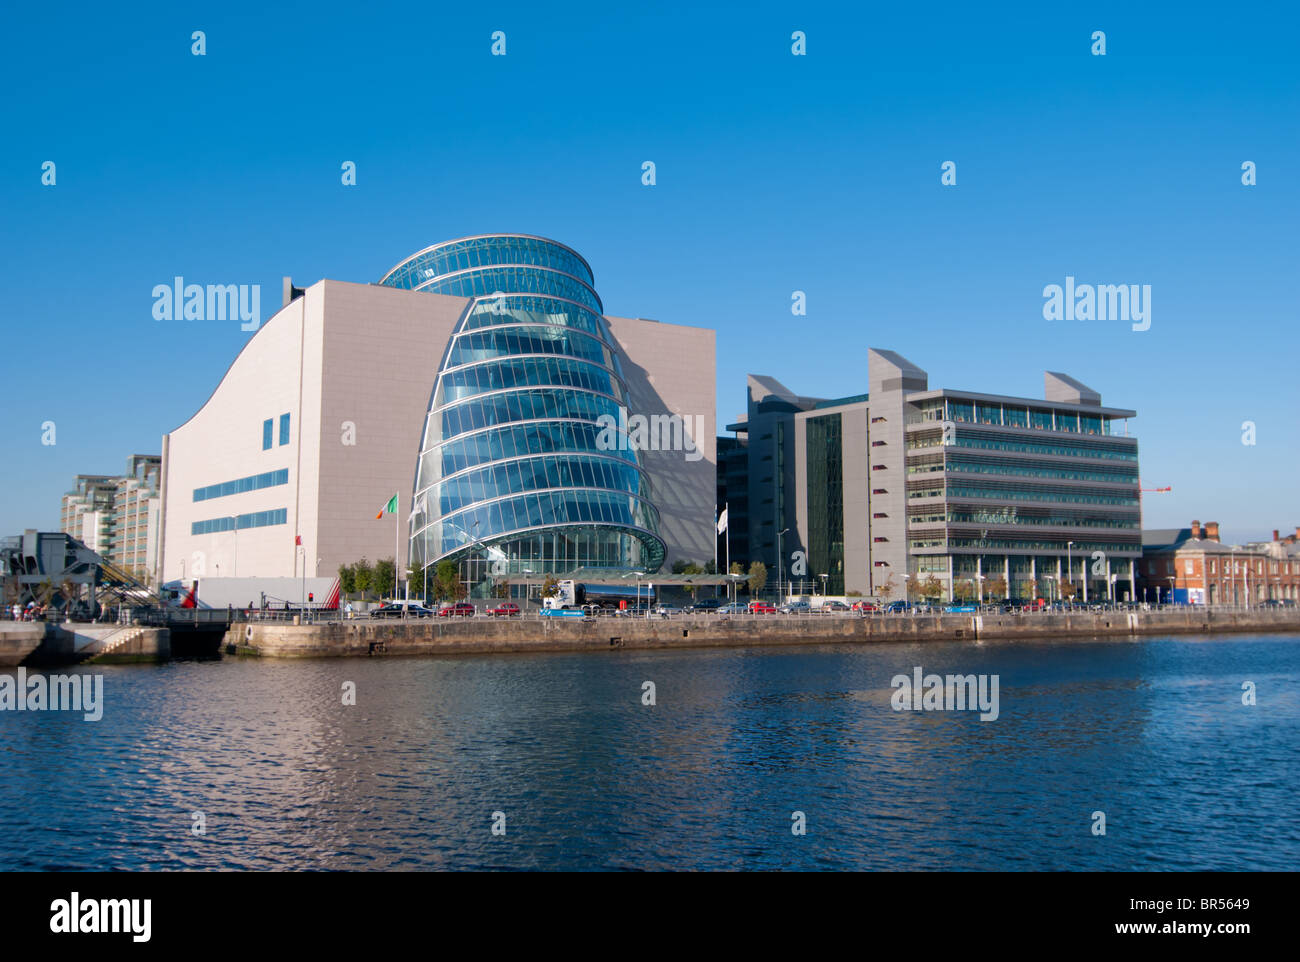 Convention Center Dublin - Stock Image